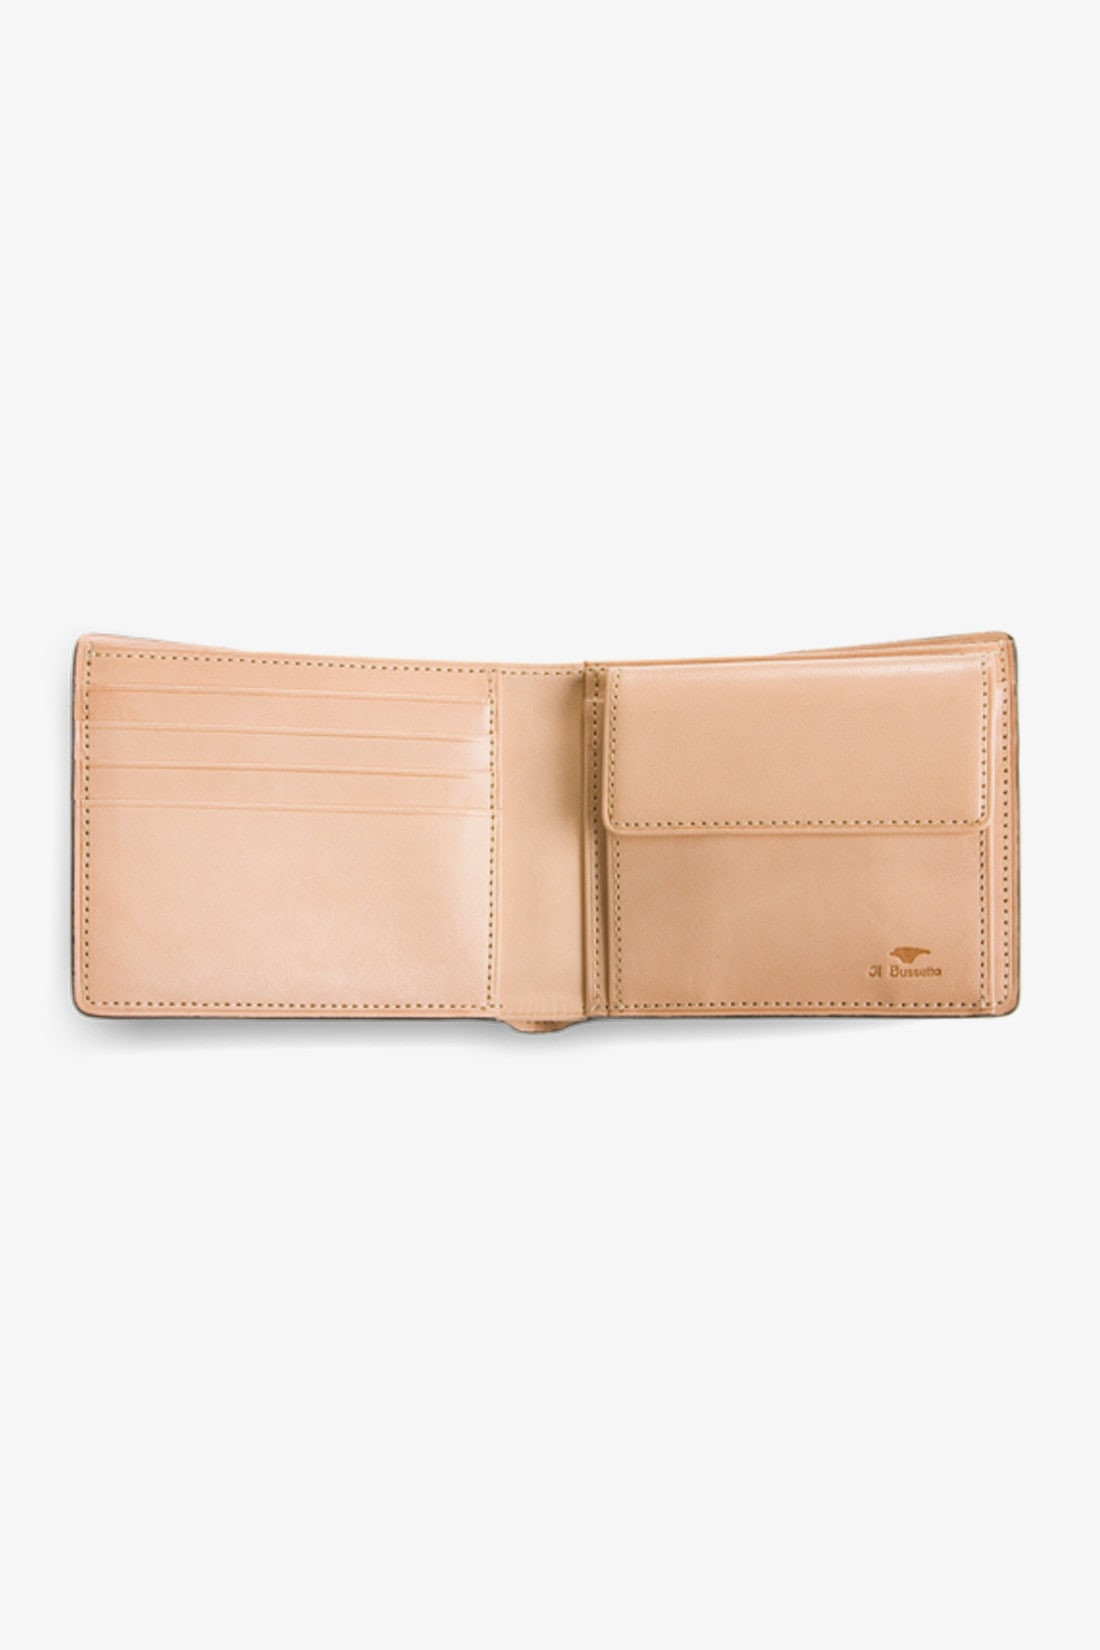 IL BUSSETTO / Bi fold wallet with coin Vintage brown